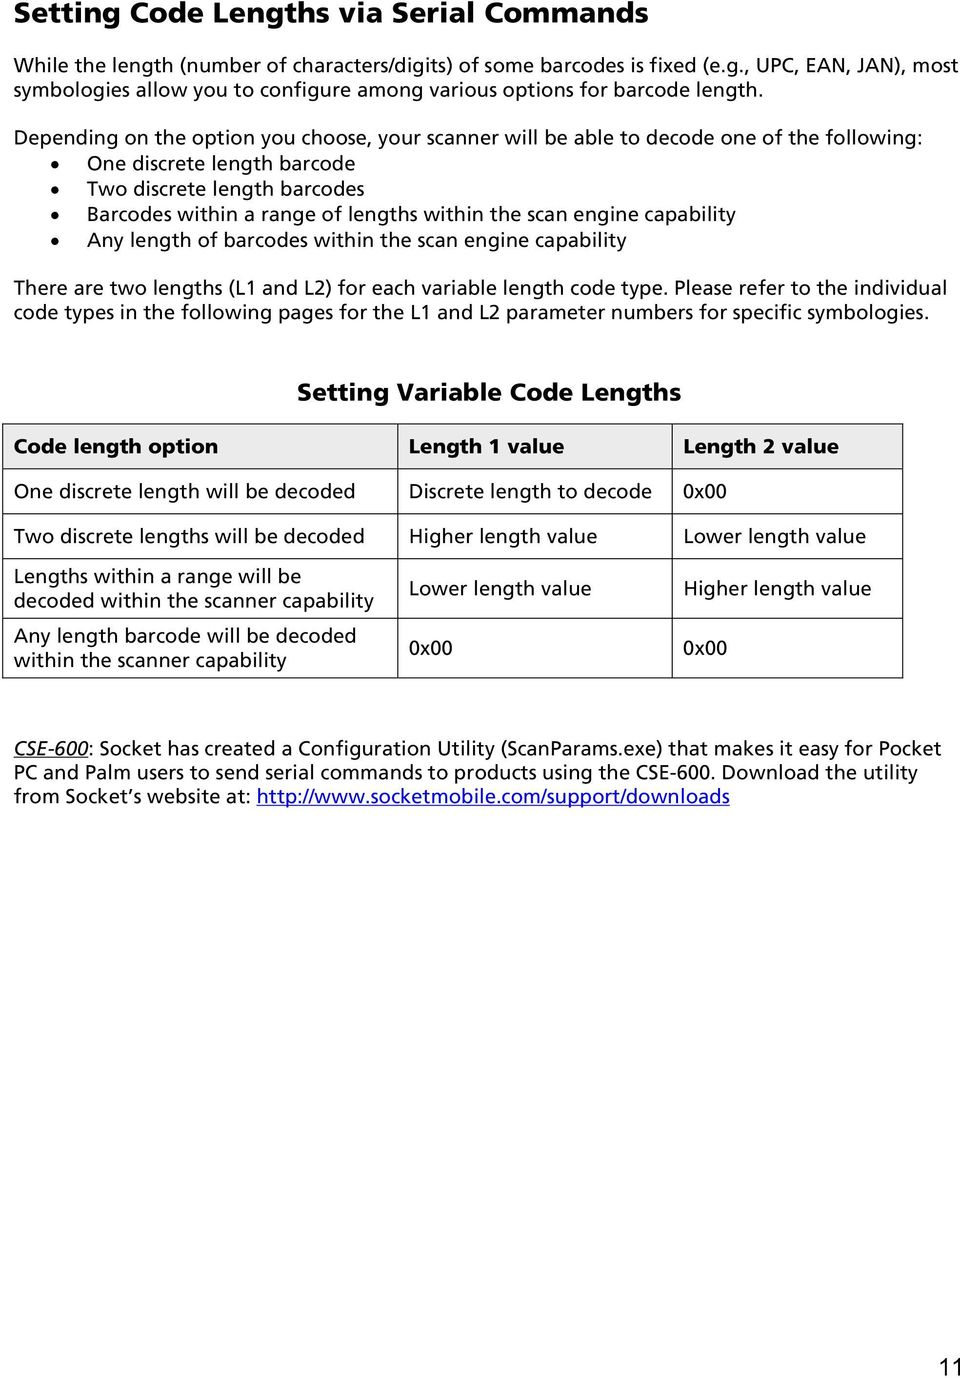 scan engine capability Any length of barcodes within the scan engine capability There are two lengths (L1 and L2) for each variable length code type.